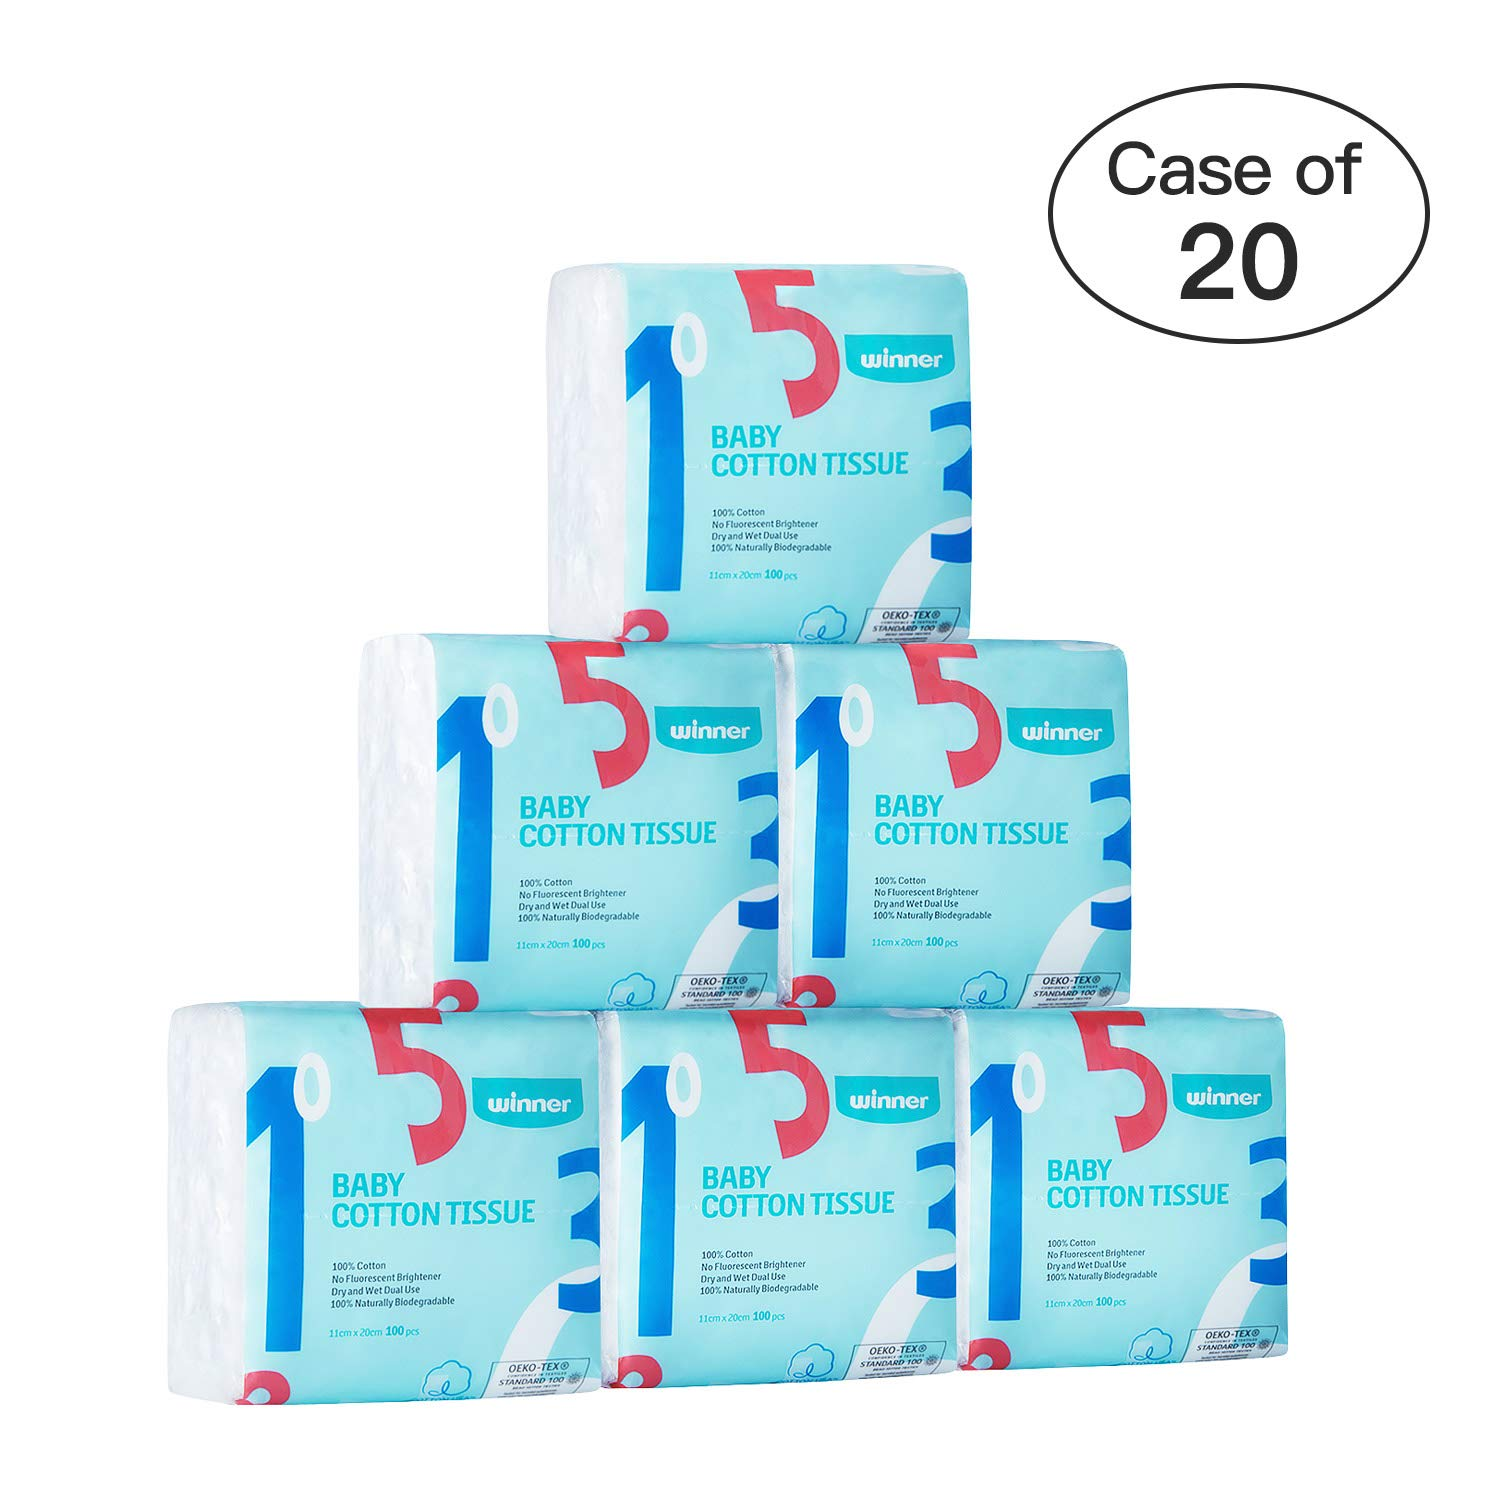 Case of 20,Winner Facial Cotton Tissue, Unscent Dry Cleansing Cloth Wipes for Sensitive Skin, 600 Pcs/Set